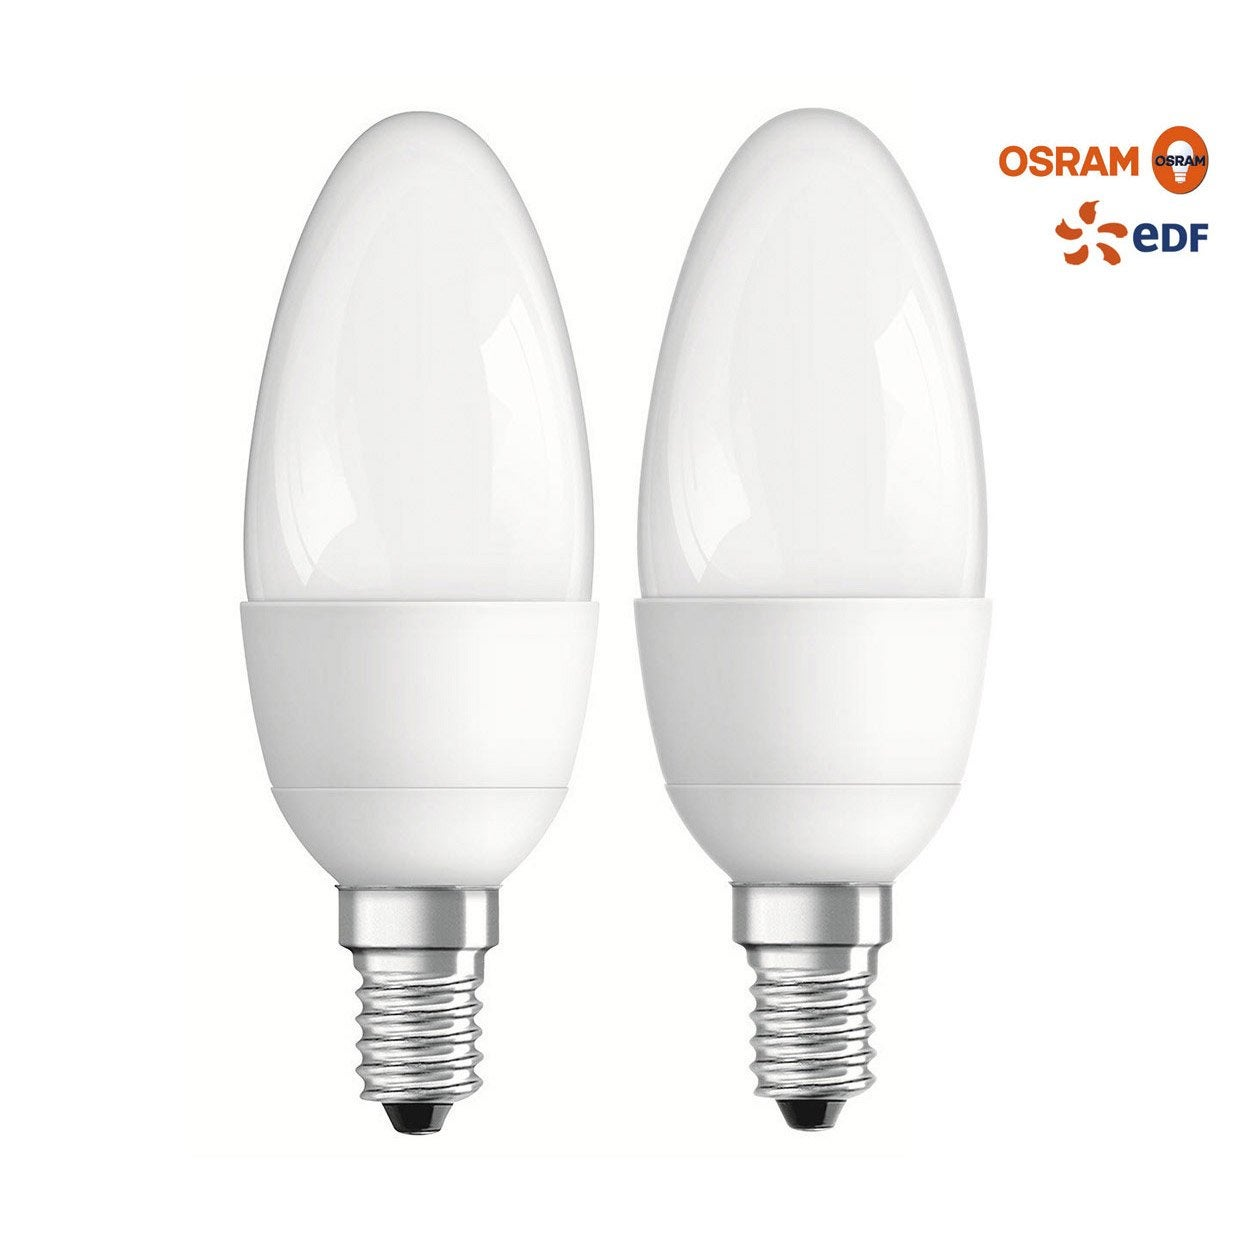 ampoule flamme led 40w osram e14 lumi re chaude env